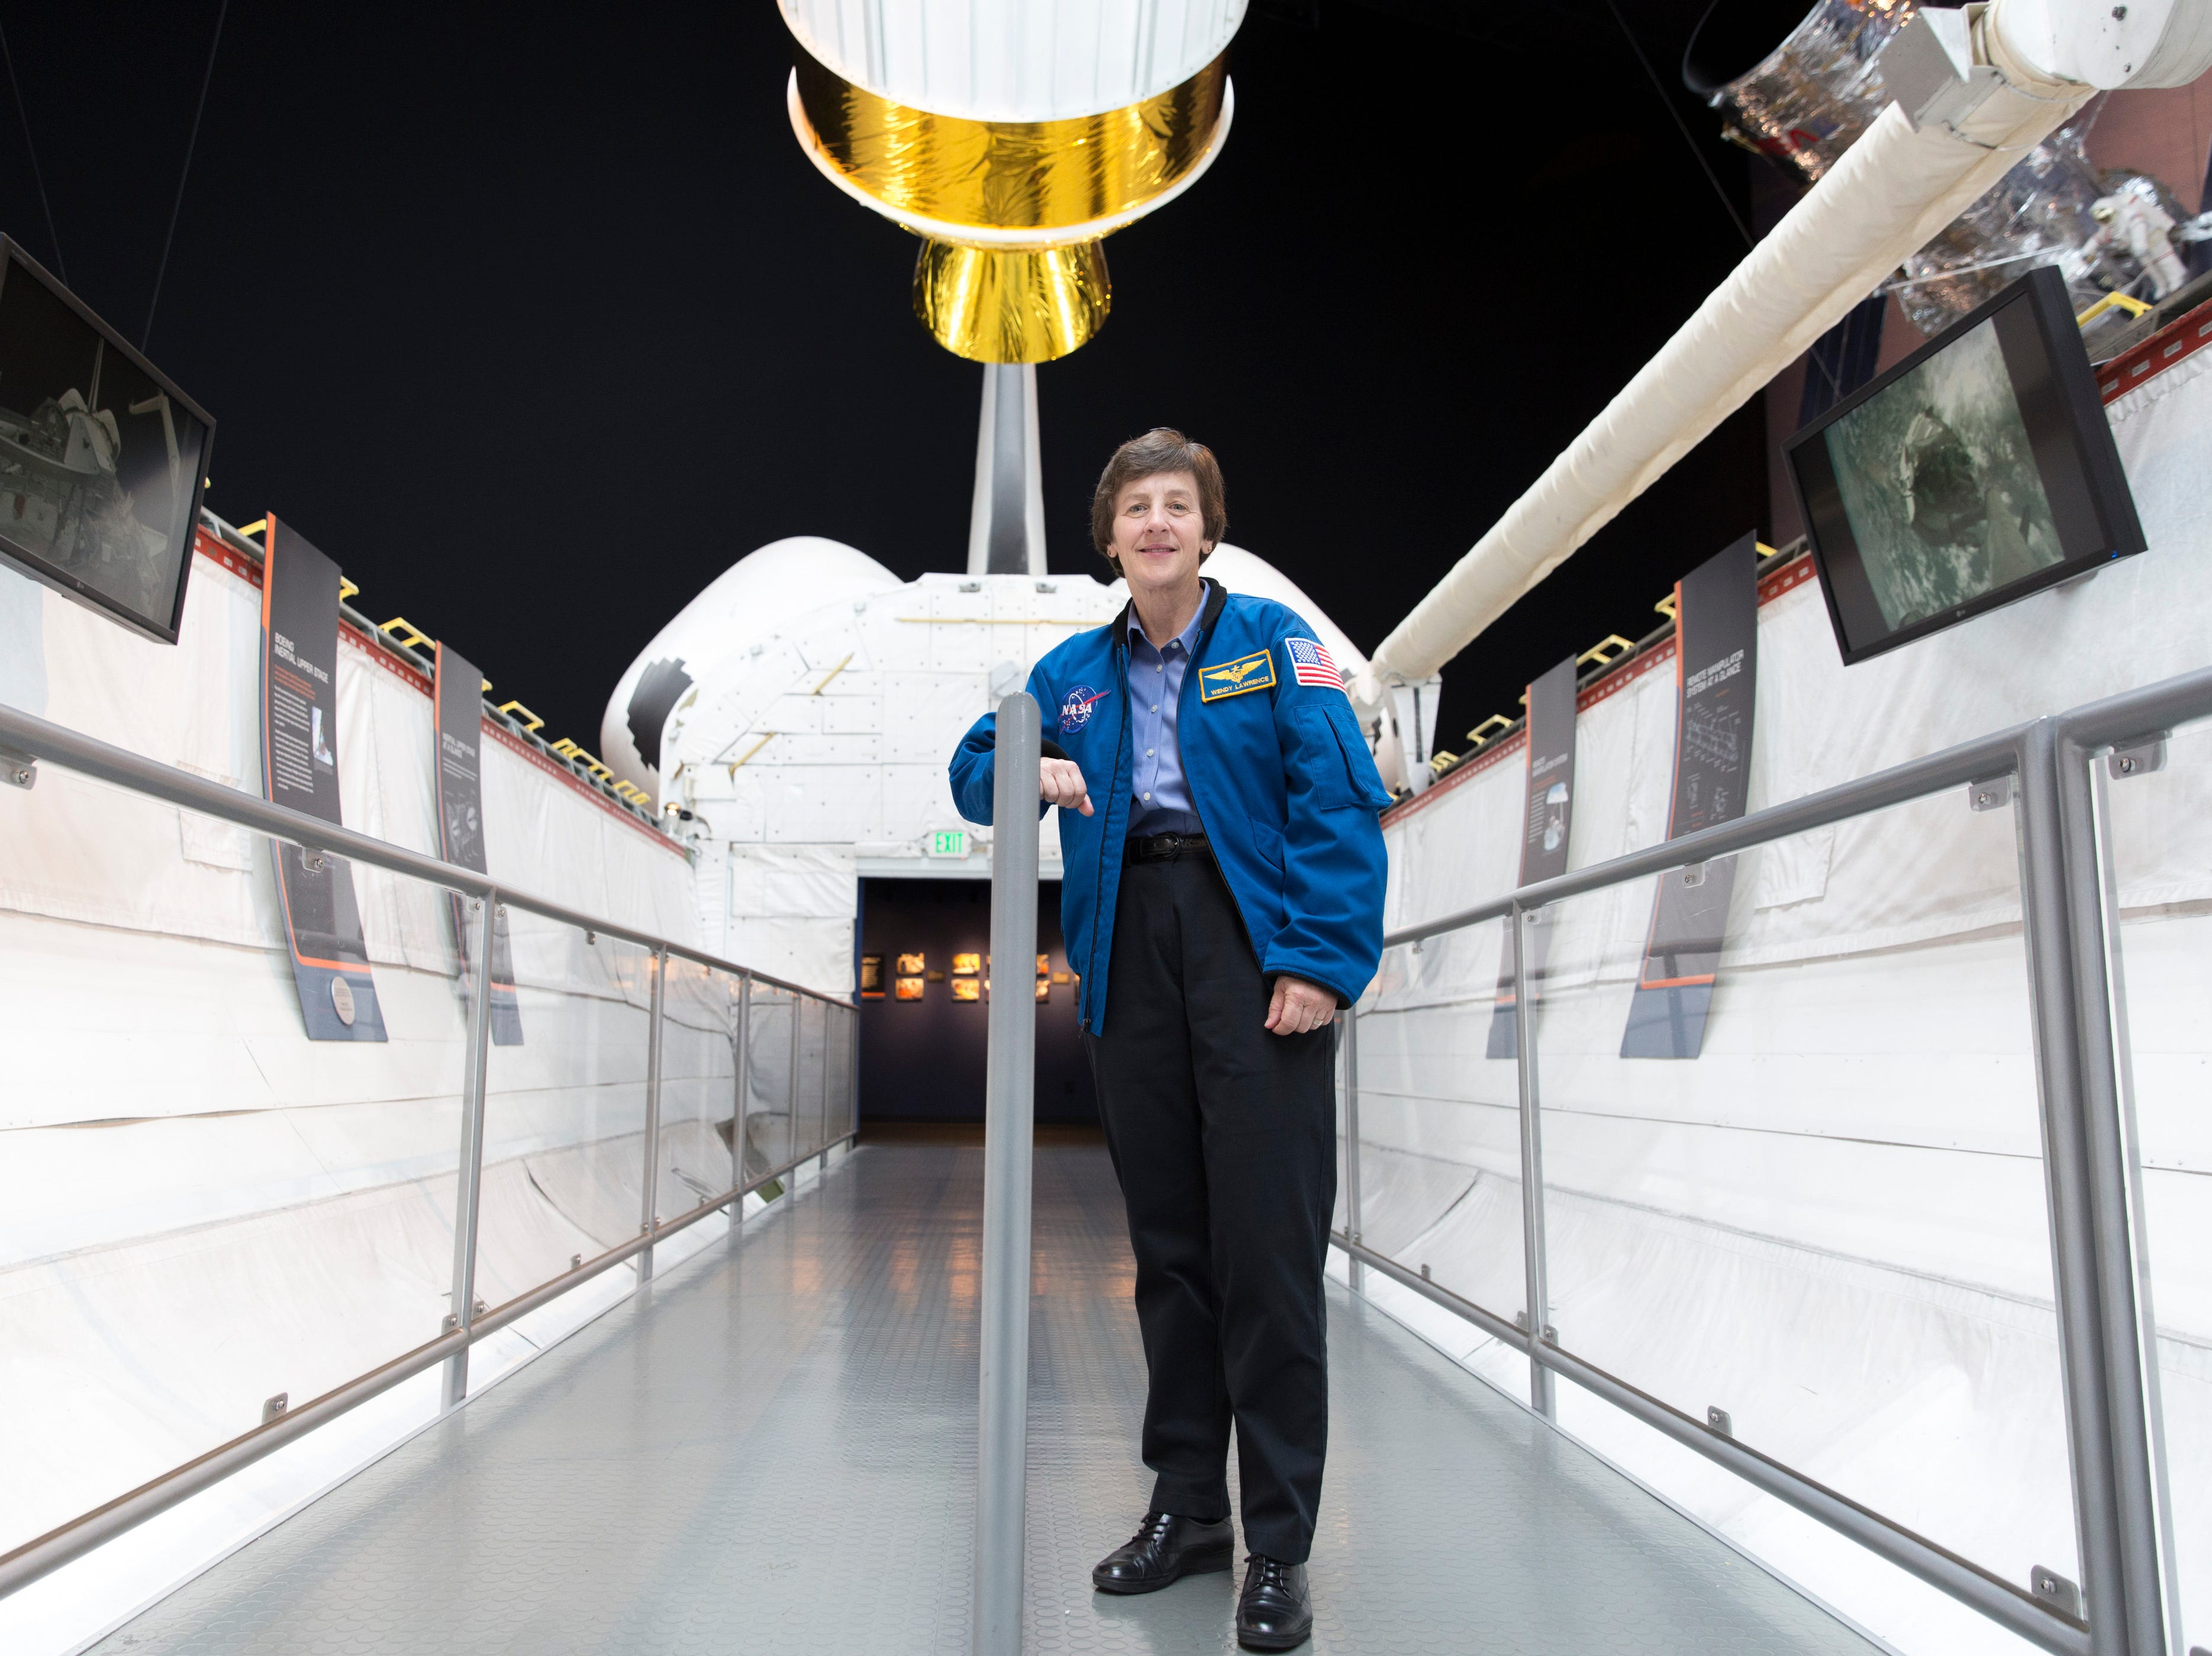 Wendy Lawrence, 58, a retired US Navy captain and former NASA astronaut, is pictured on the Space Shuttle trainer that was used for astronaut's training at the Museum of Flight in Seattle, Washington, February 28, 2018.